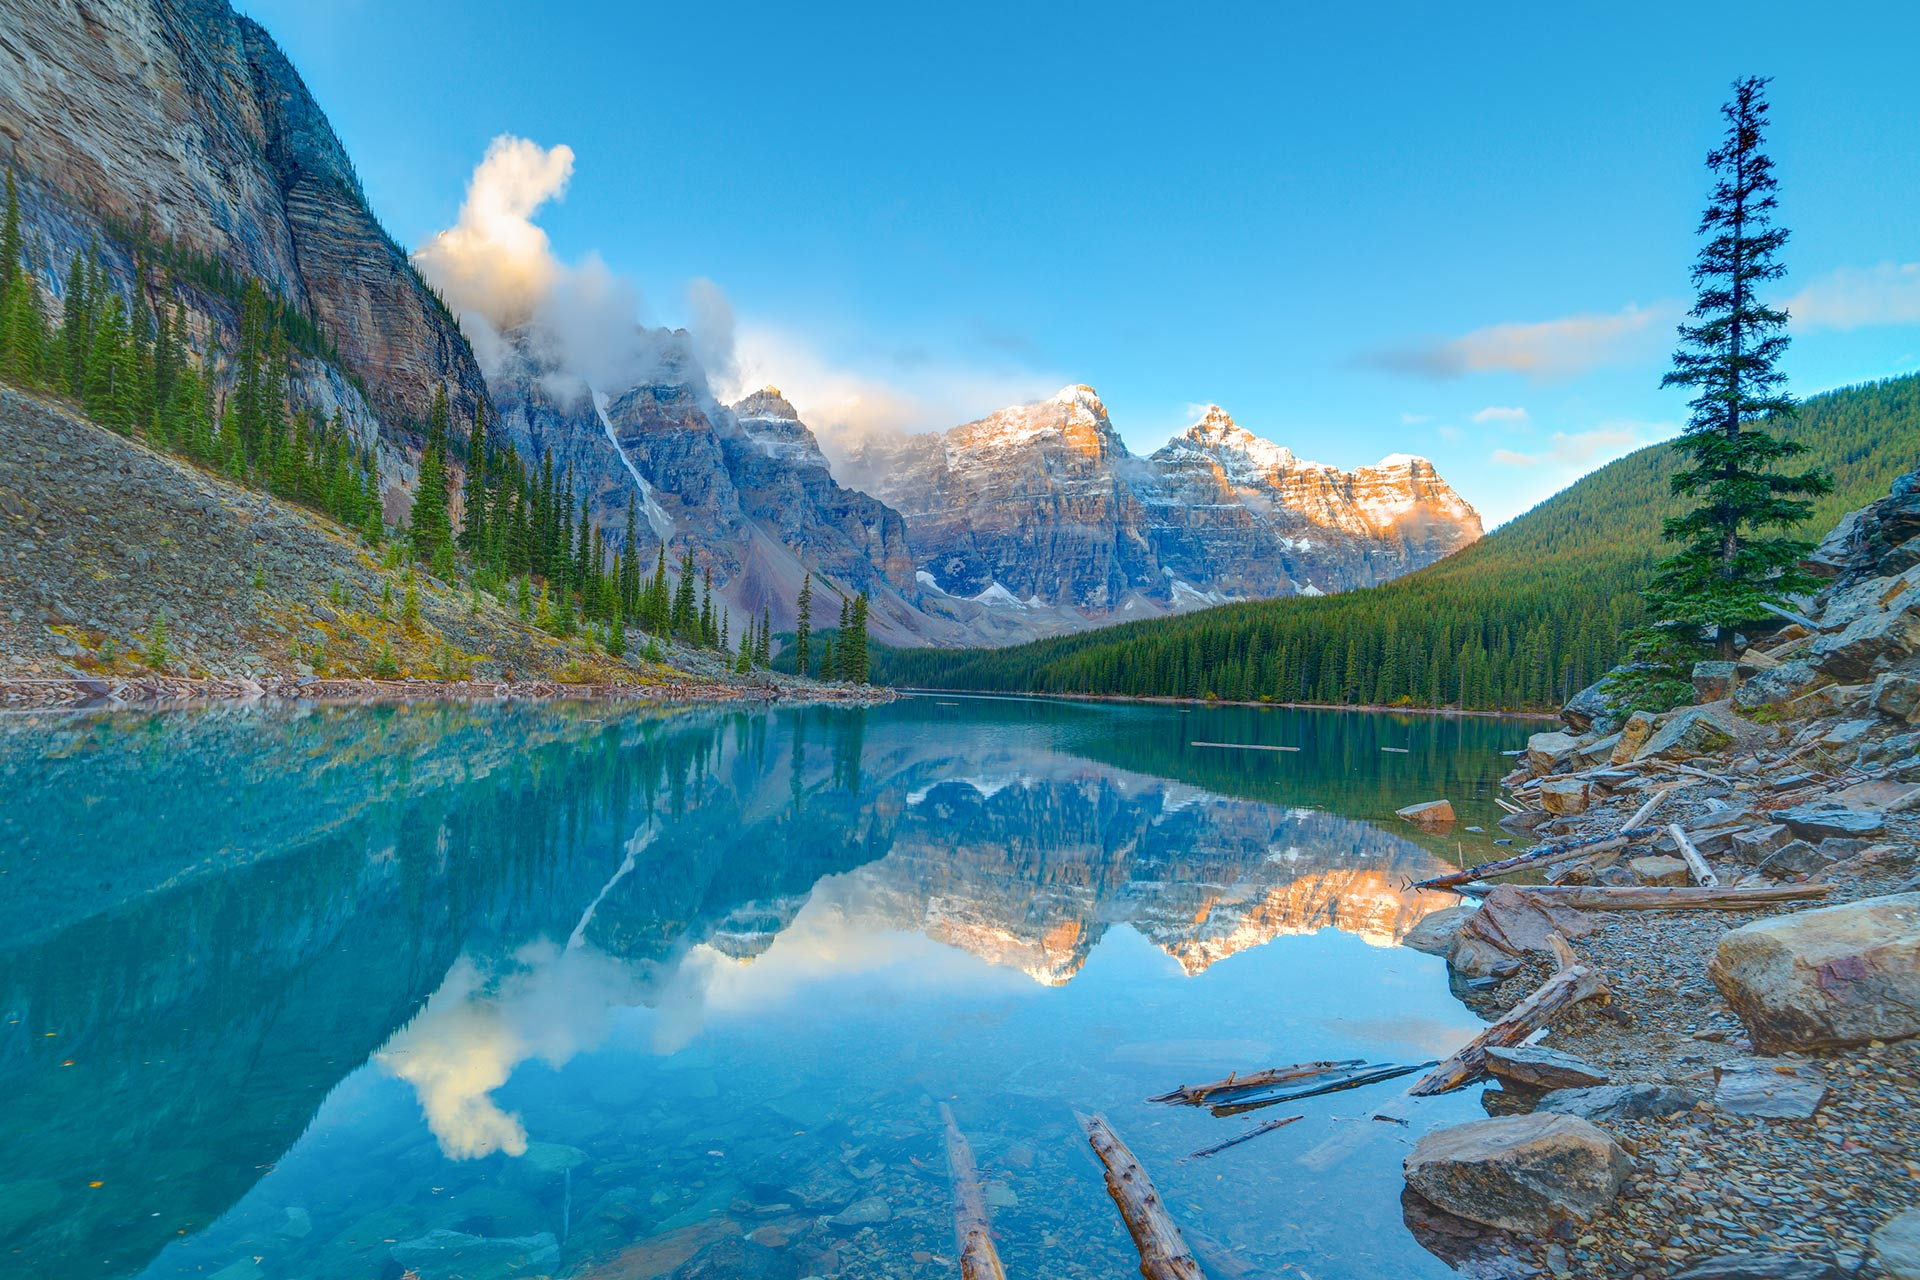 Banff National Park in Canada.